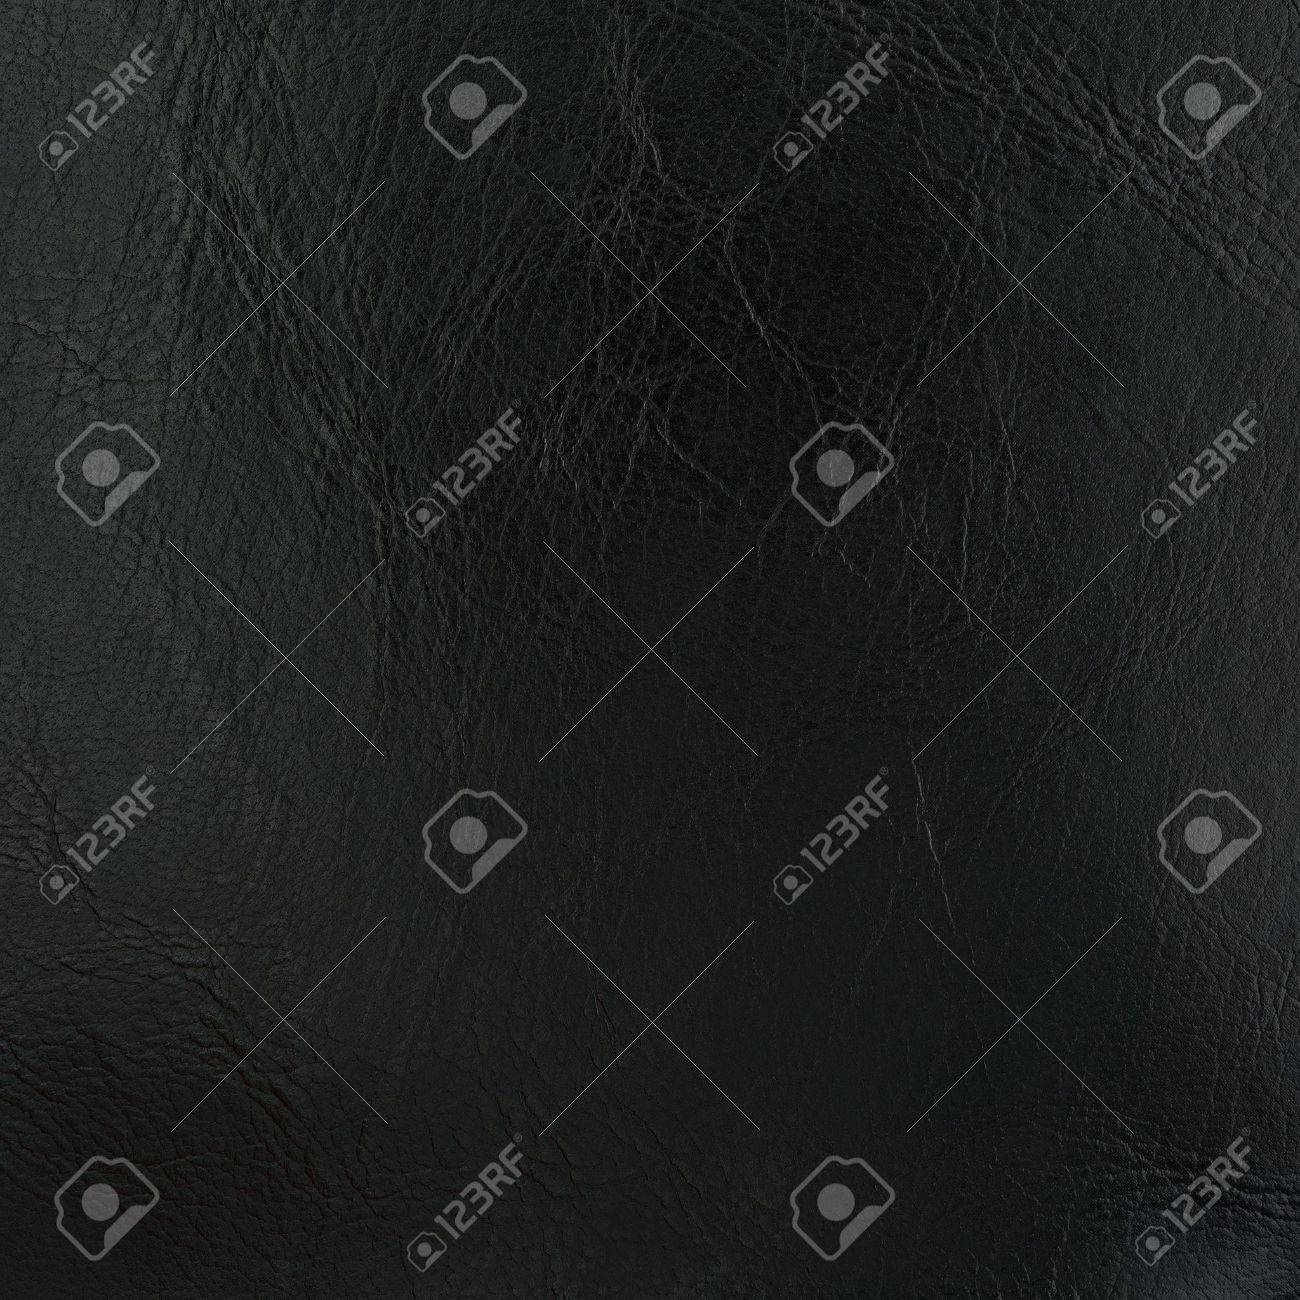 backgrounds of leather texture Stock Photo - 18118713